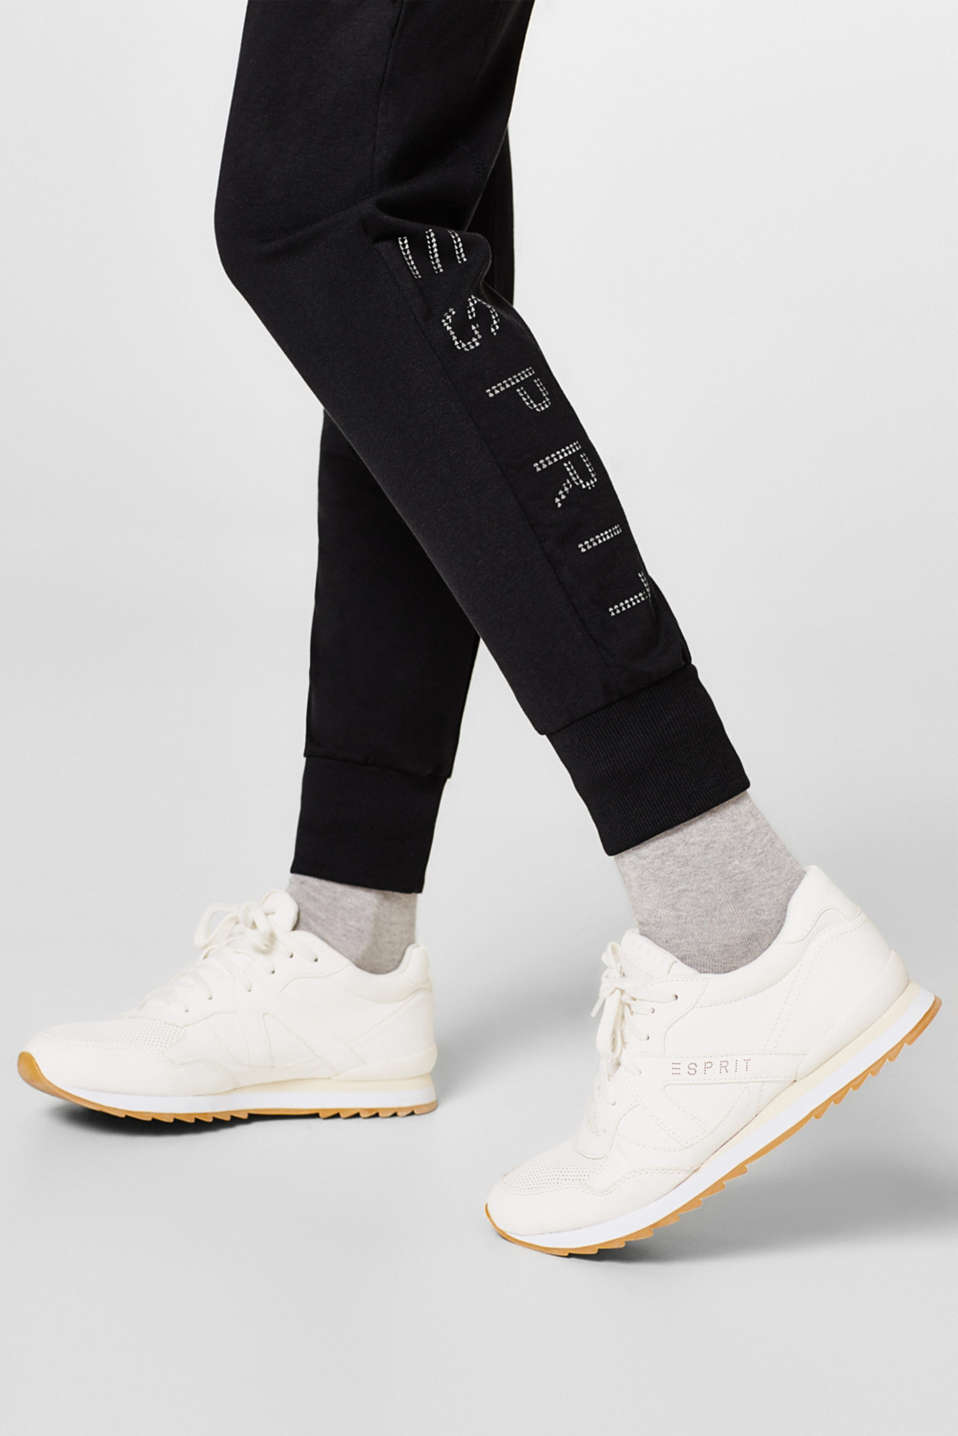 Stretch jersey trousers with a shiny logo